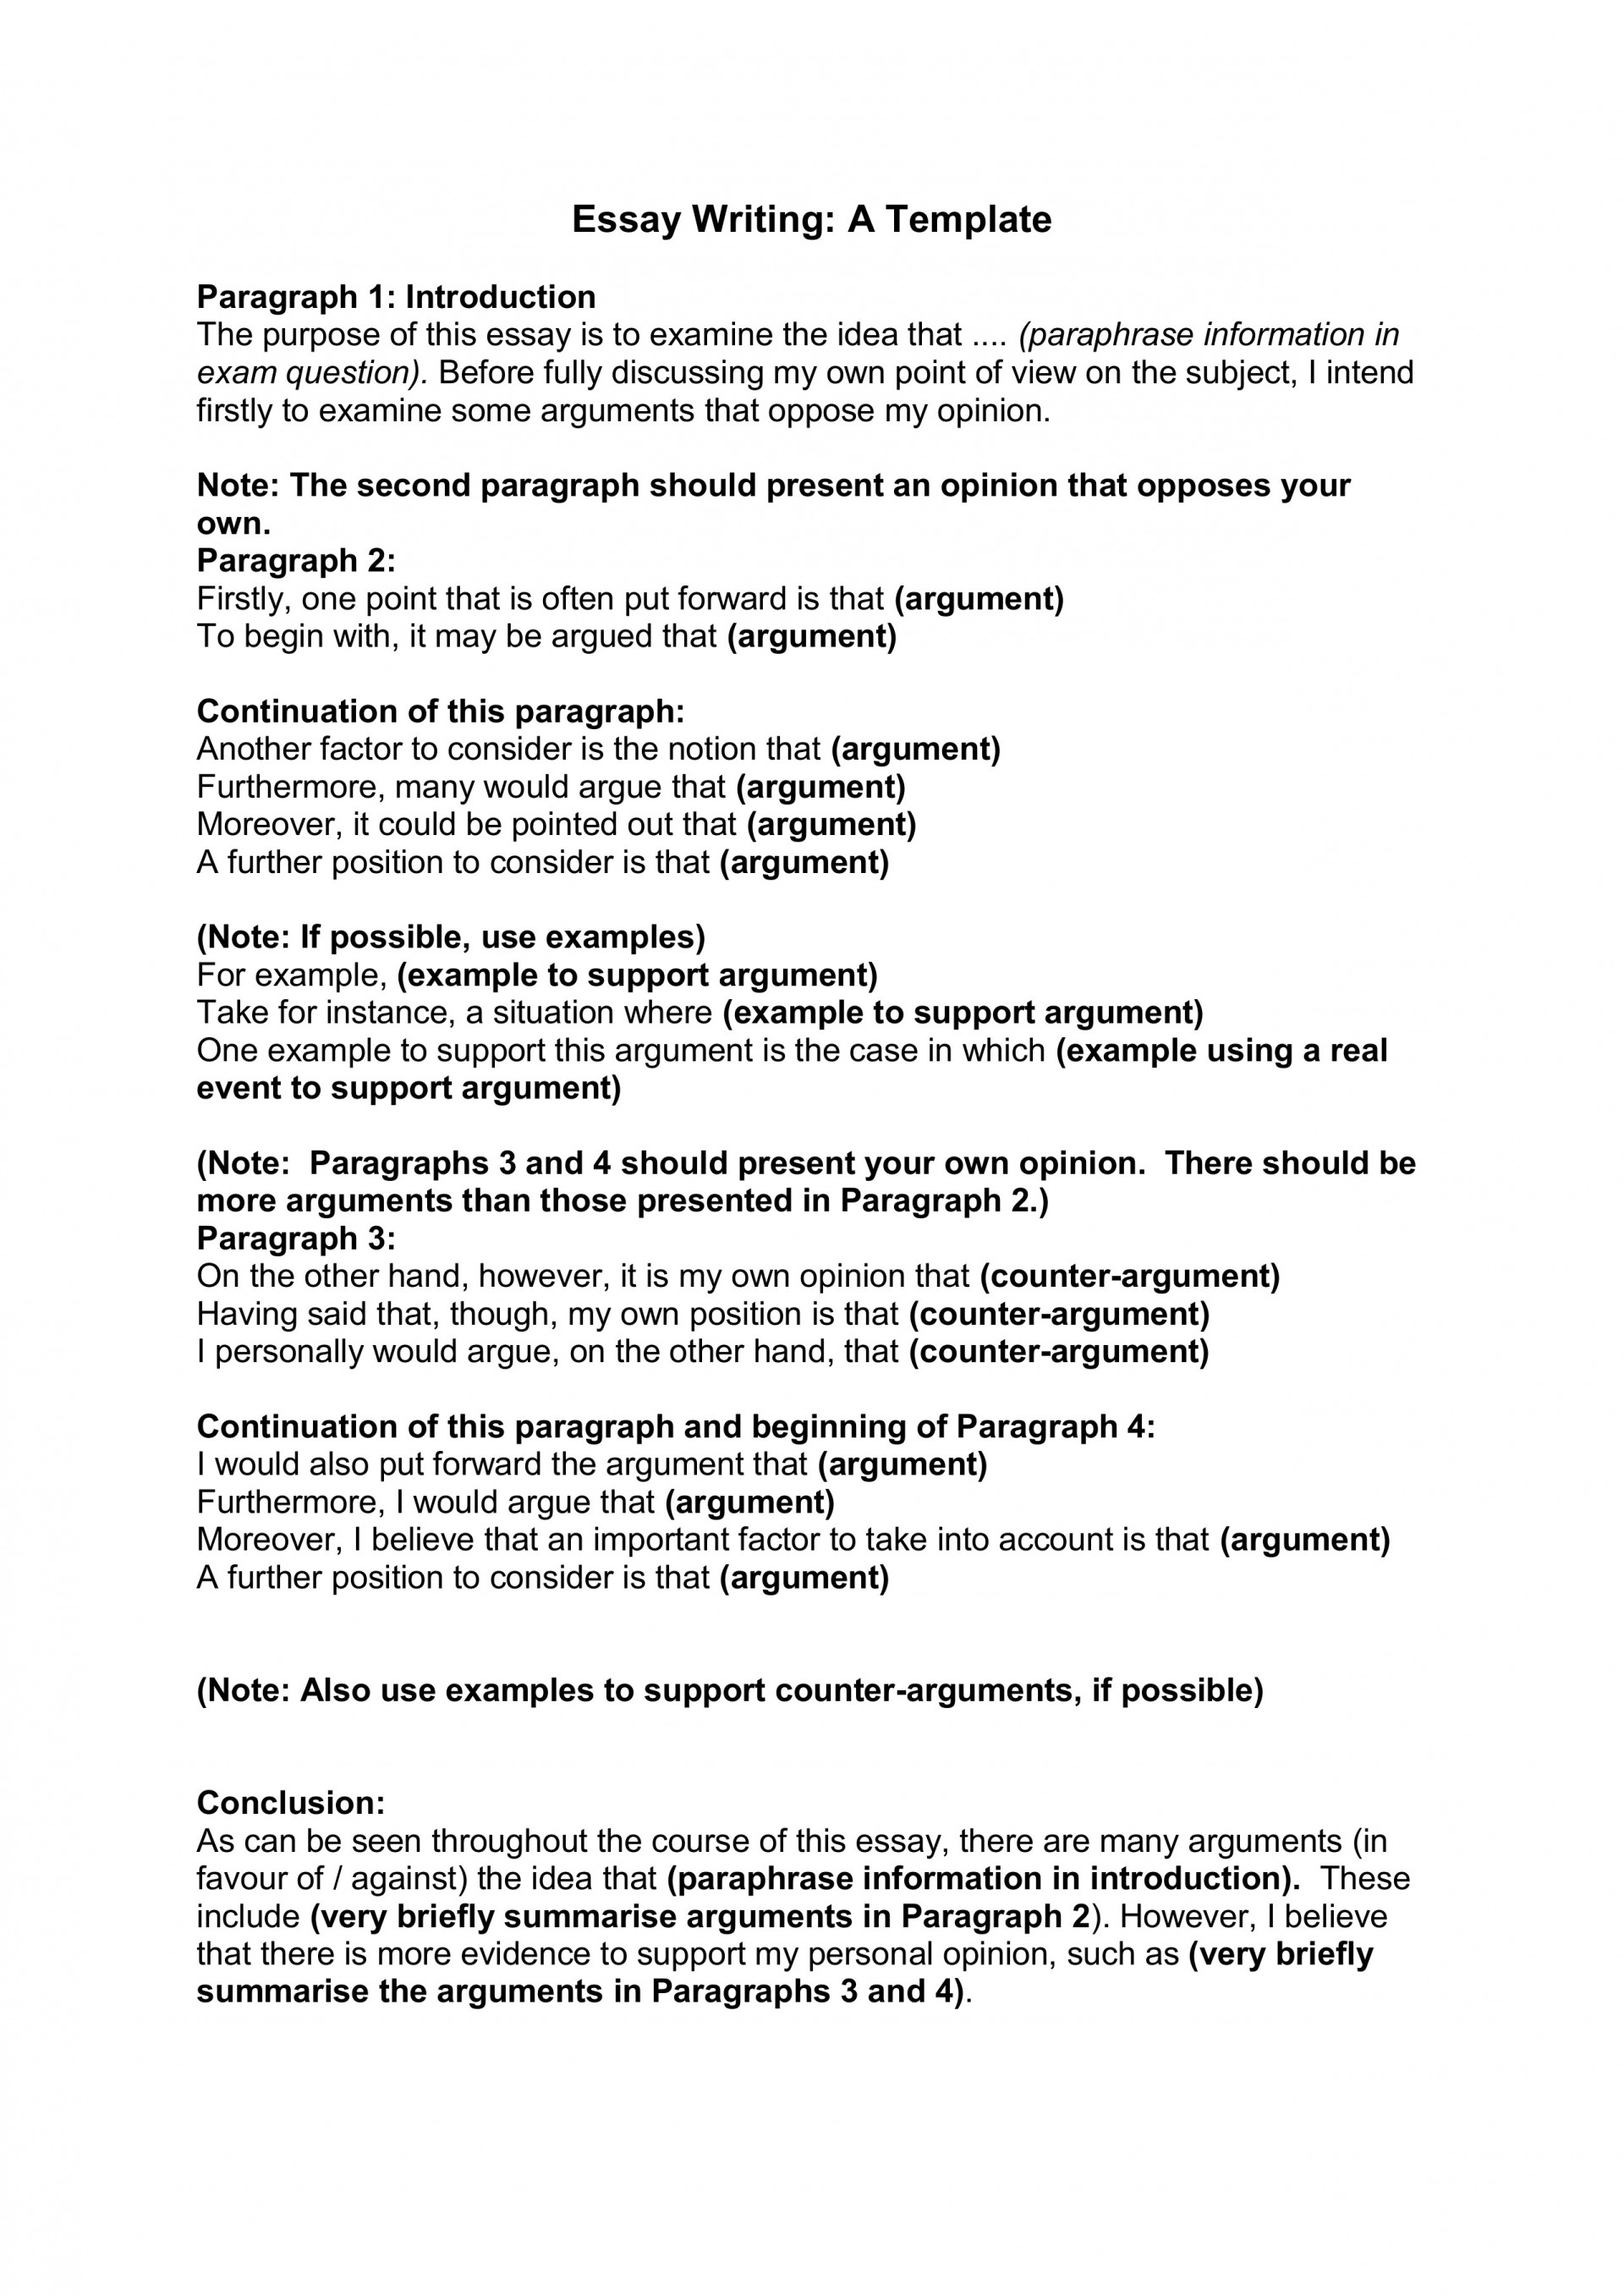 007 Essay Example Writing Template For Part Write An Stating Your Astounding Position On Whether A Person Can Choose To Be Happy Which Is More Important What Thinks 1920